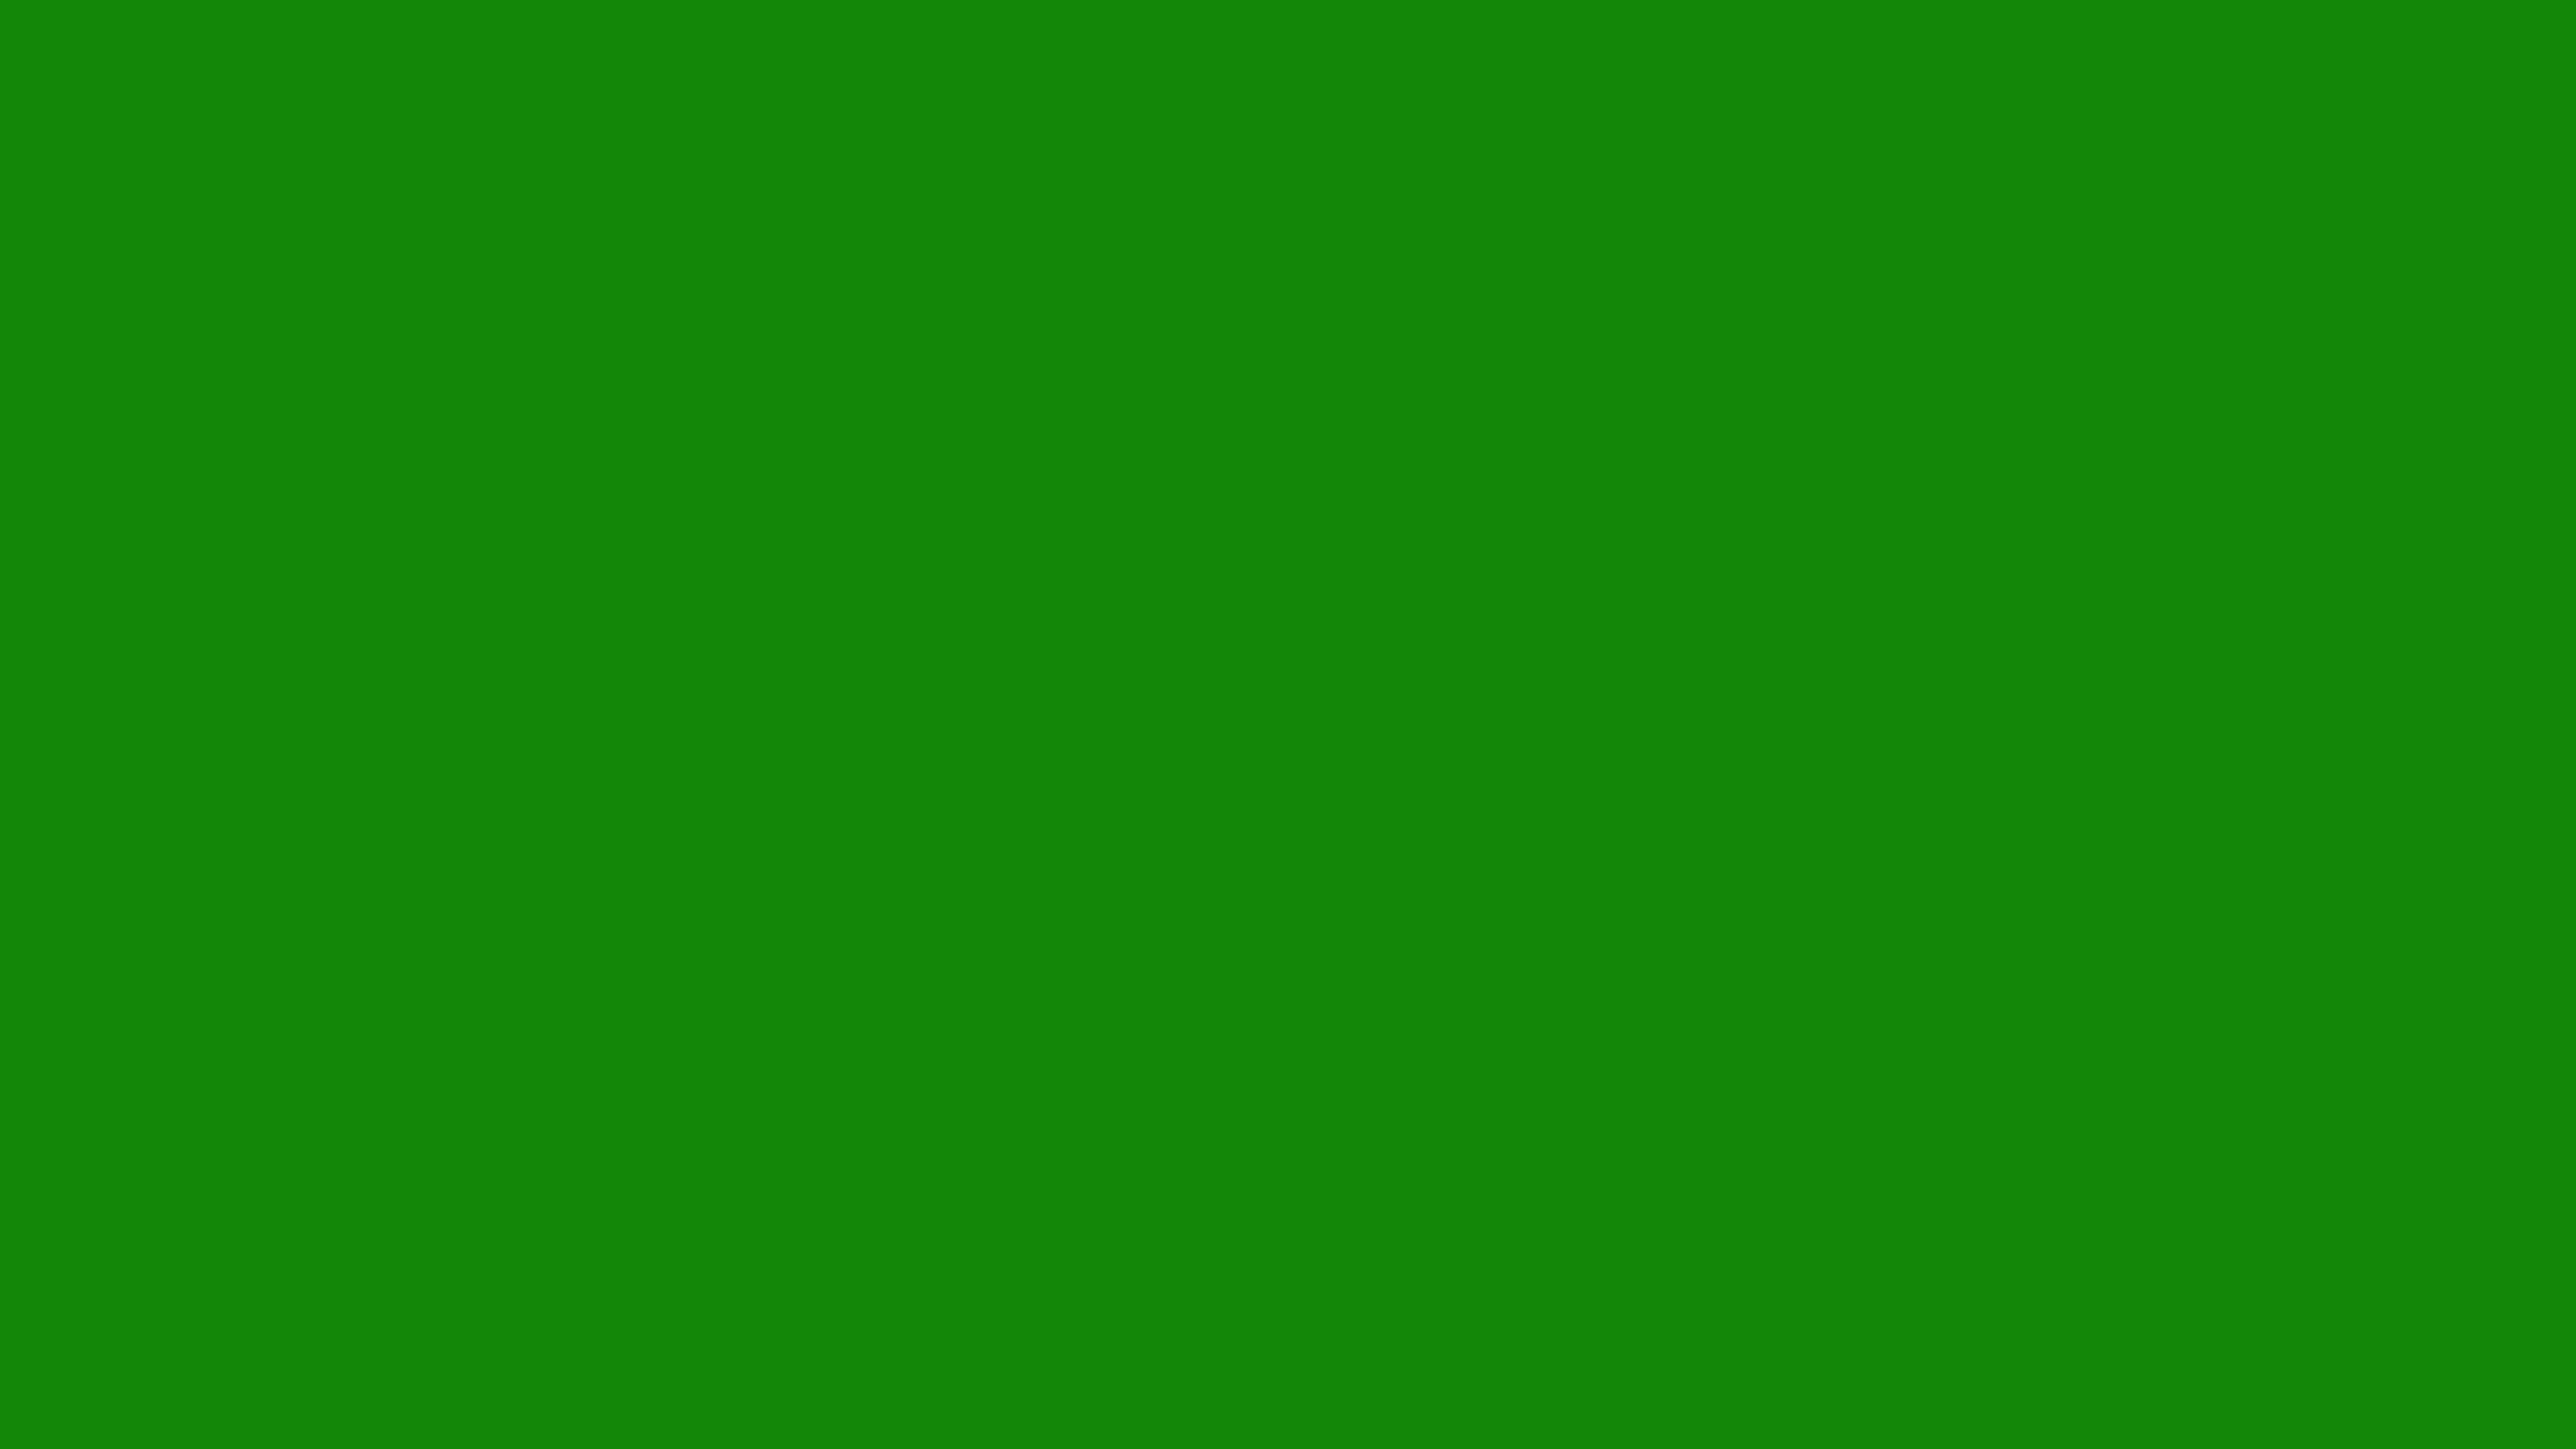 5120x2880 India Green Solid Color Background